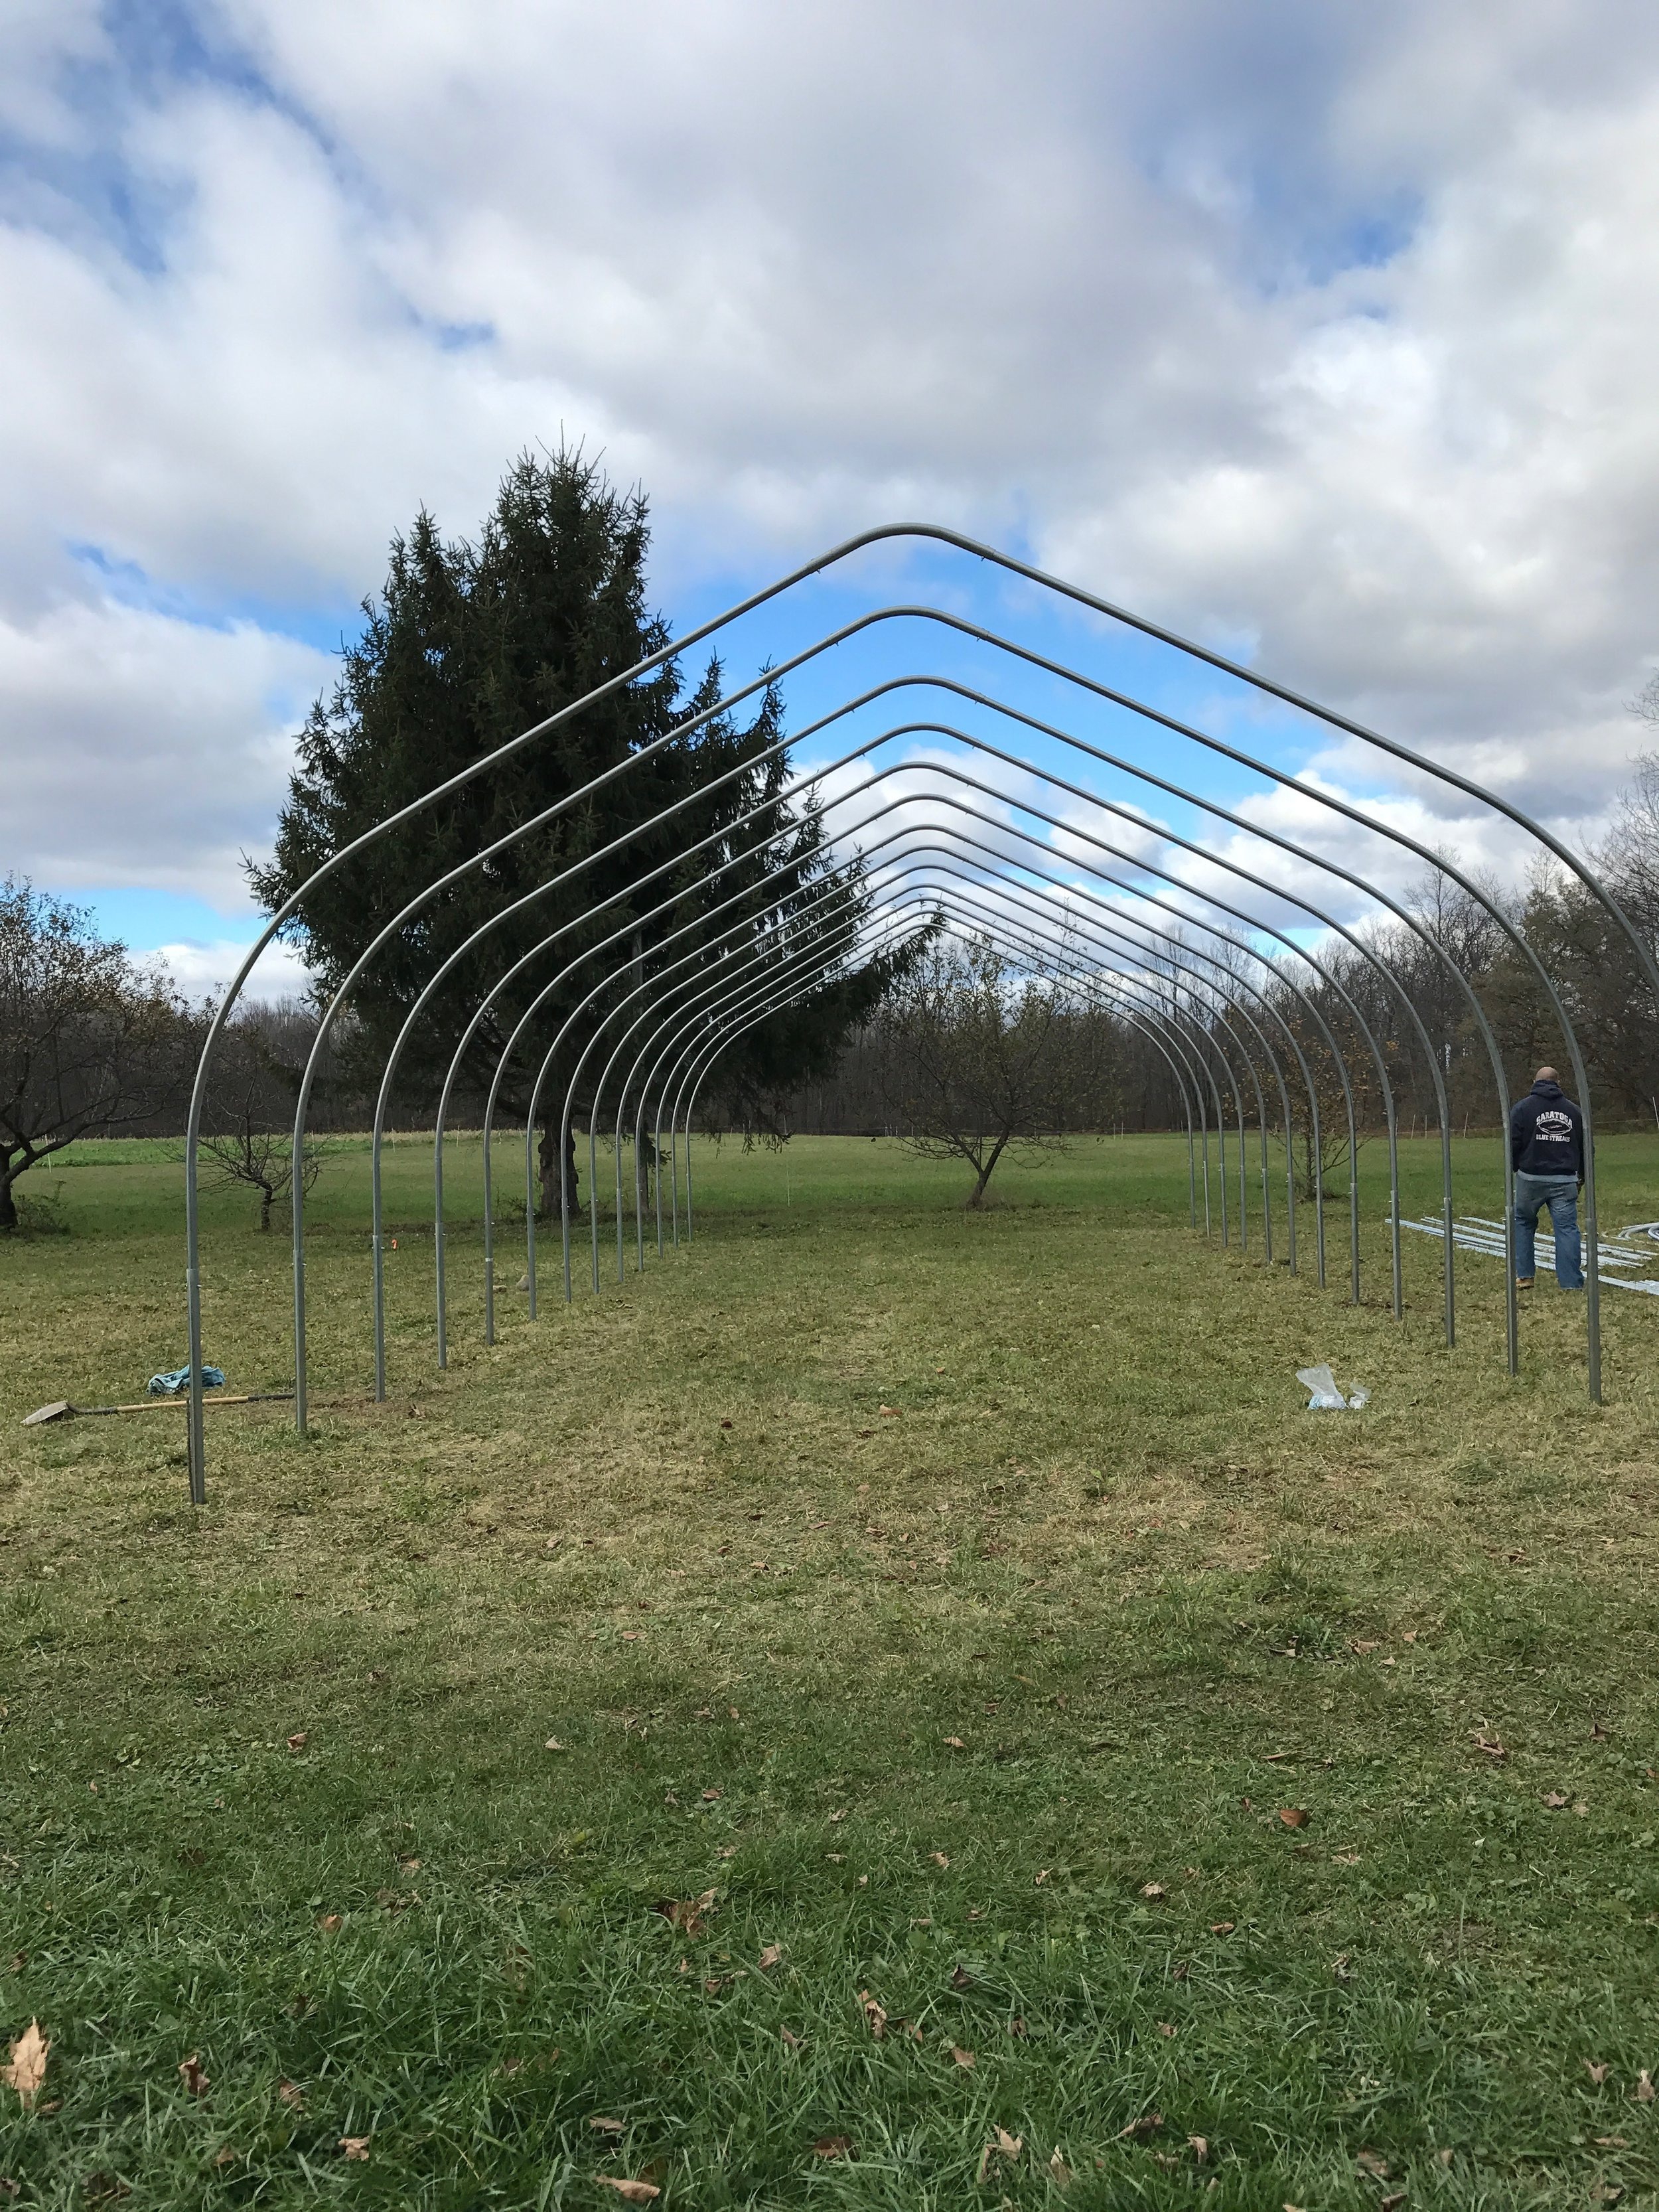 Putting up the first of the two new greenhouses/hoop houses